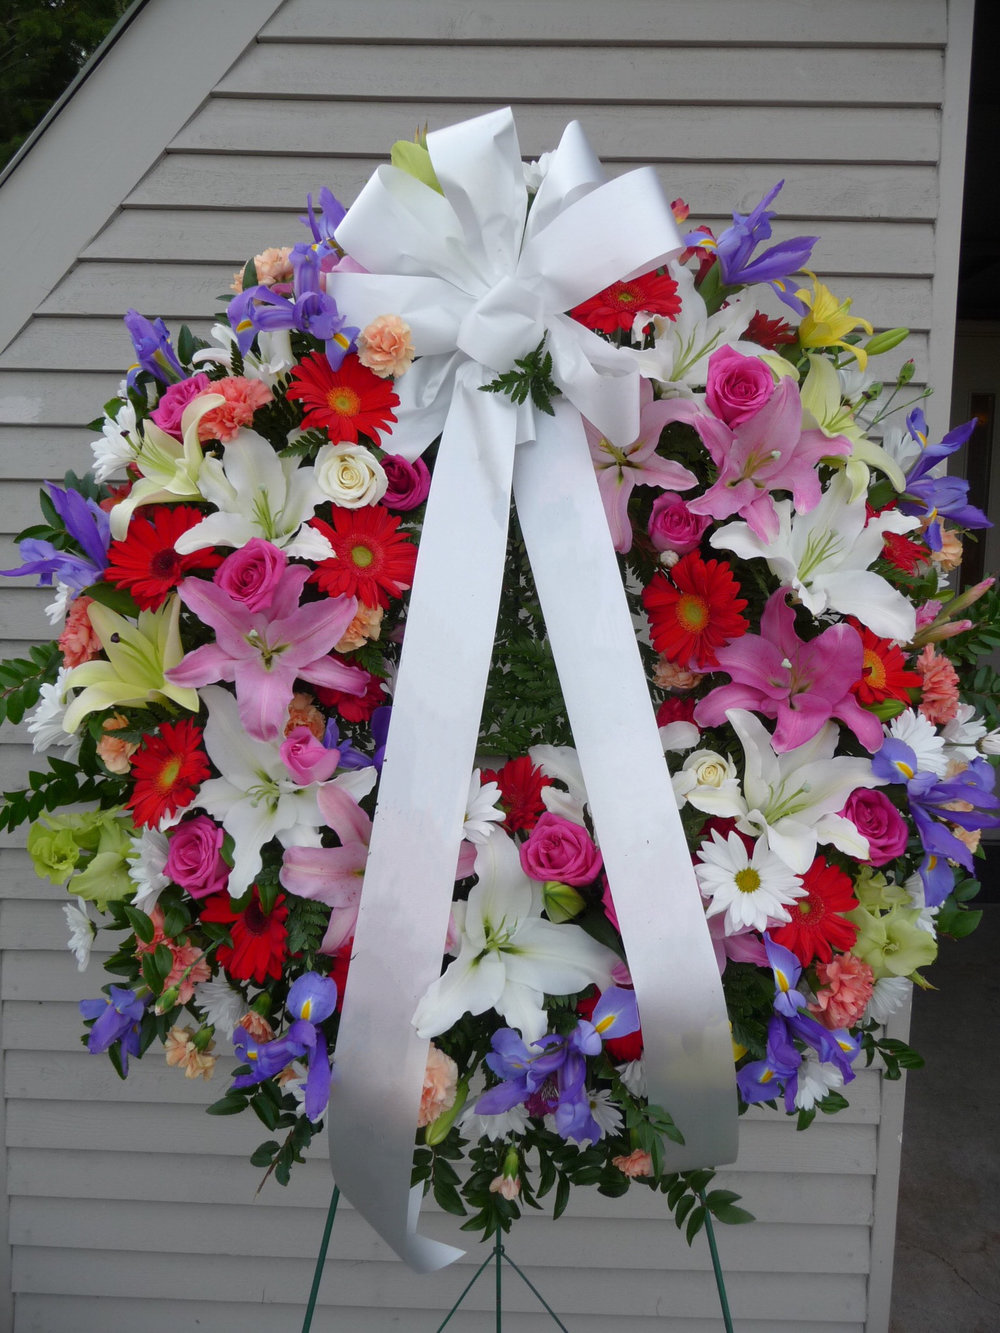 Lilies & More Wreath (W-32)